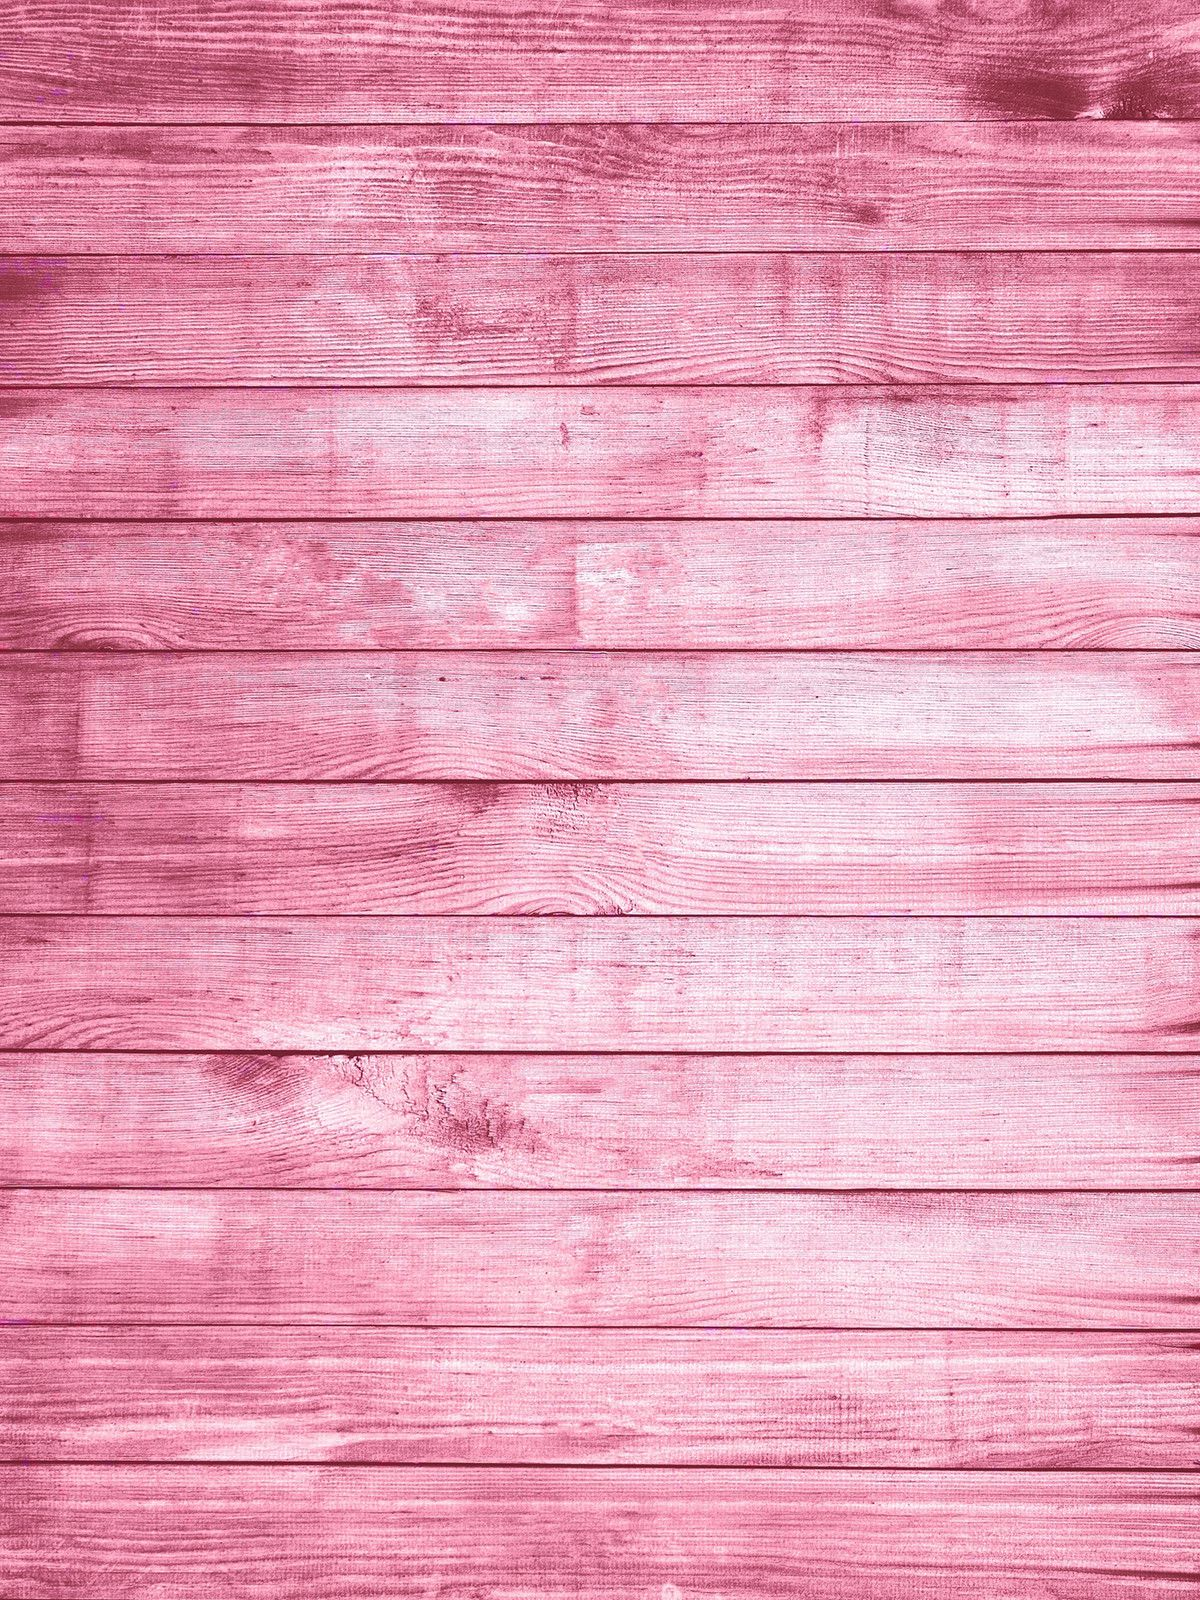 Pink ing Of You Printed Photography Background 9006 Pink 1200x1600